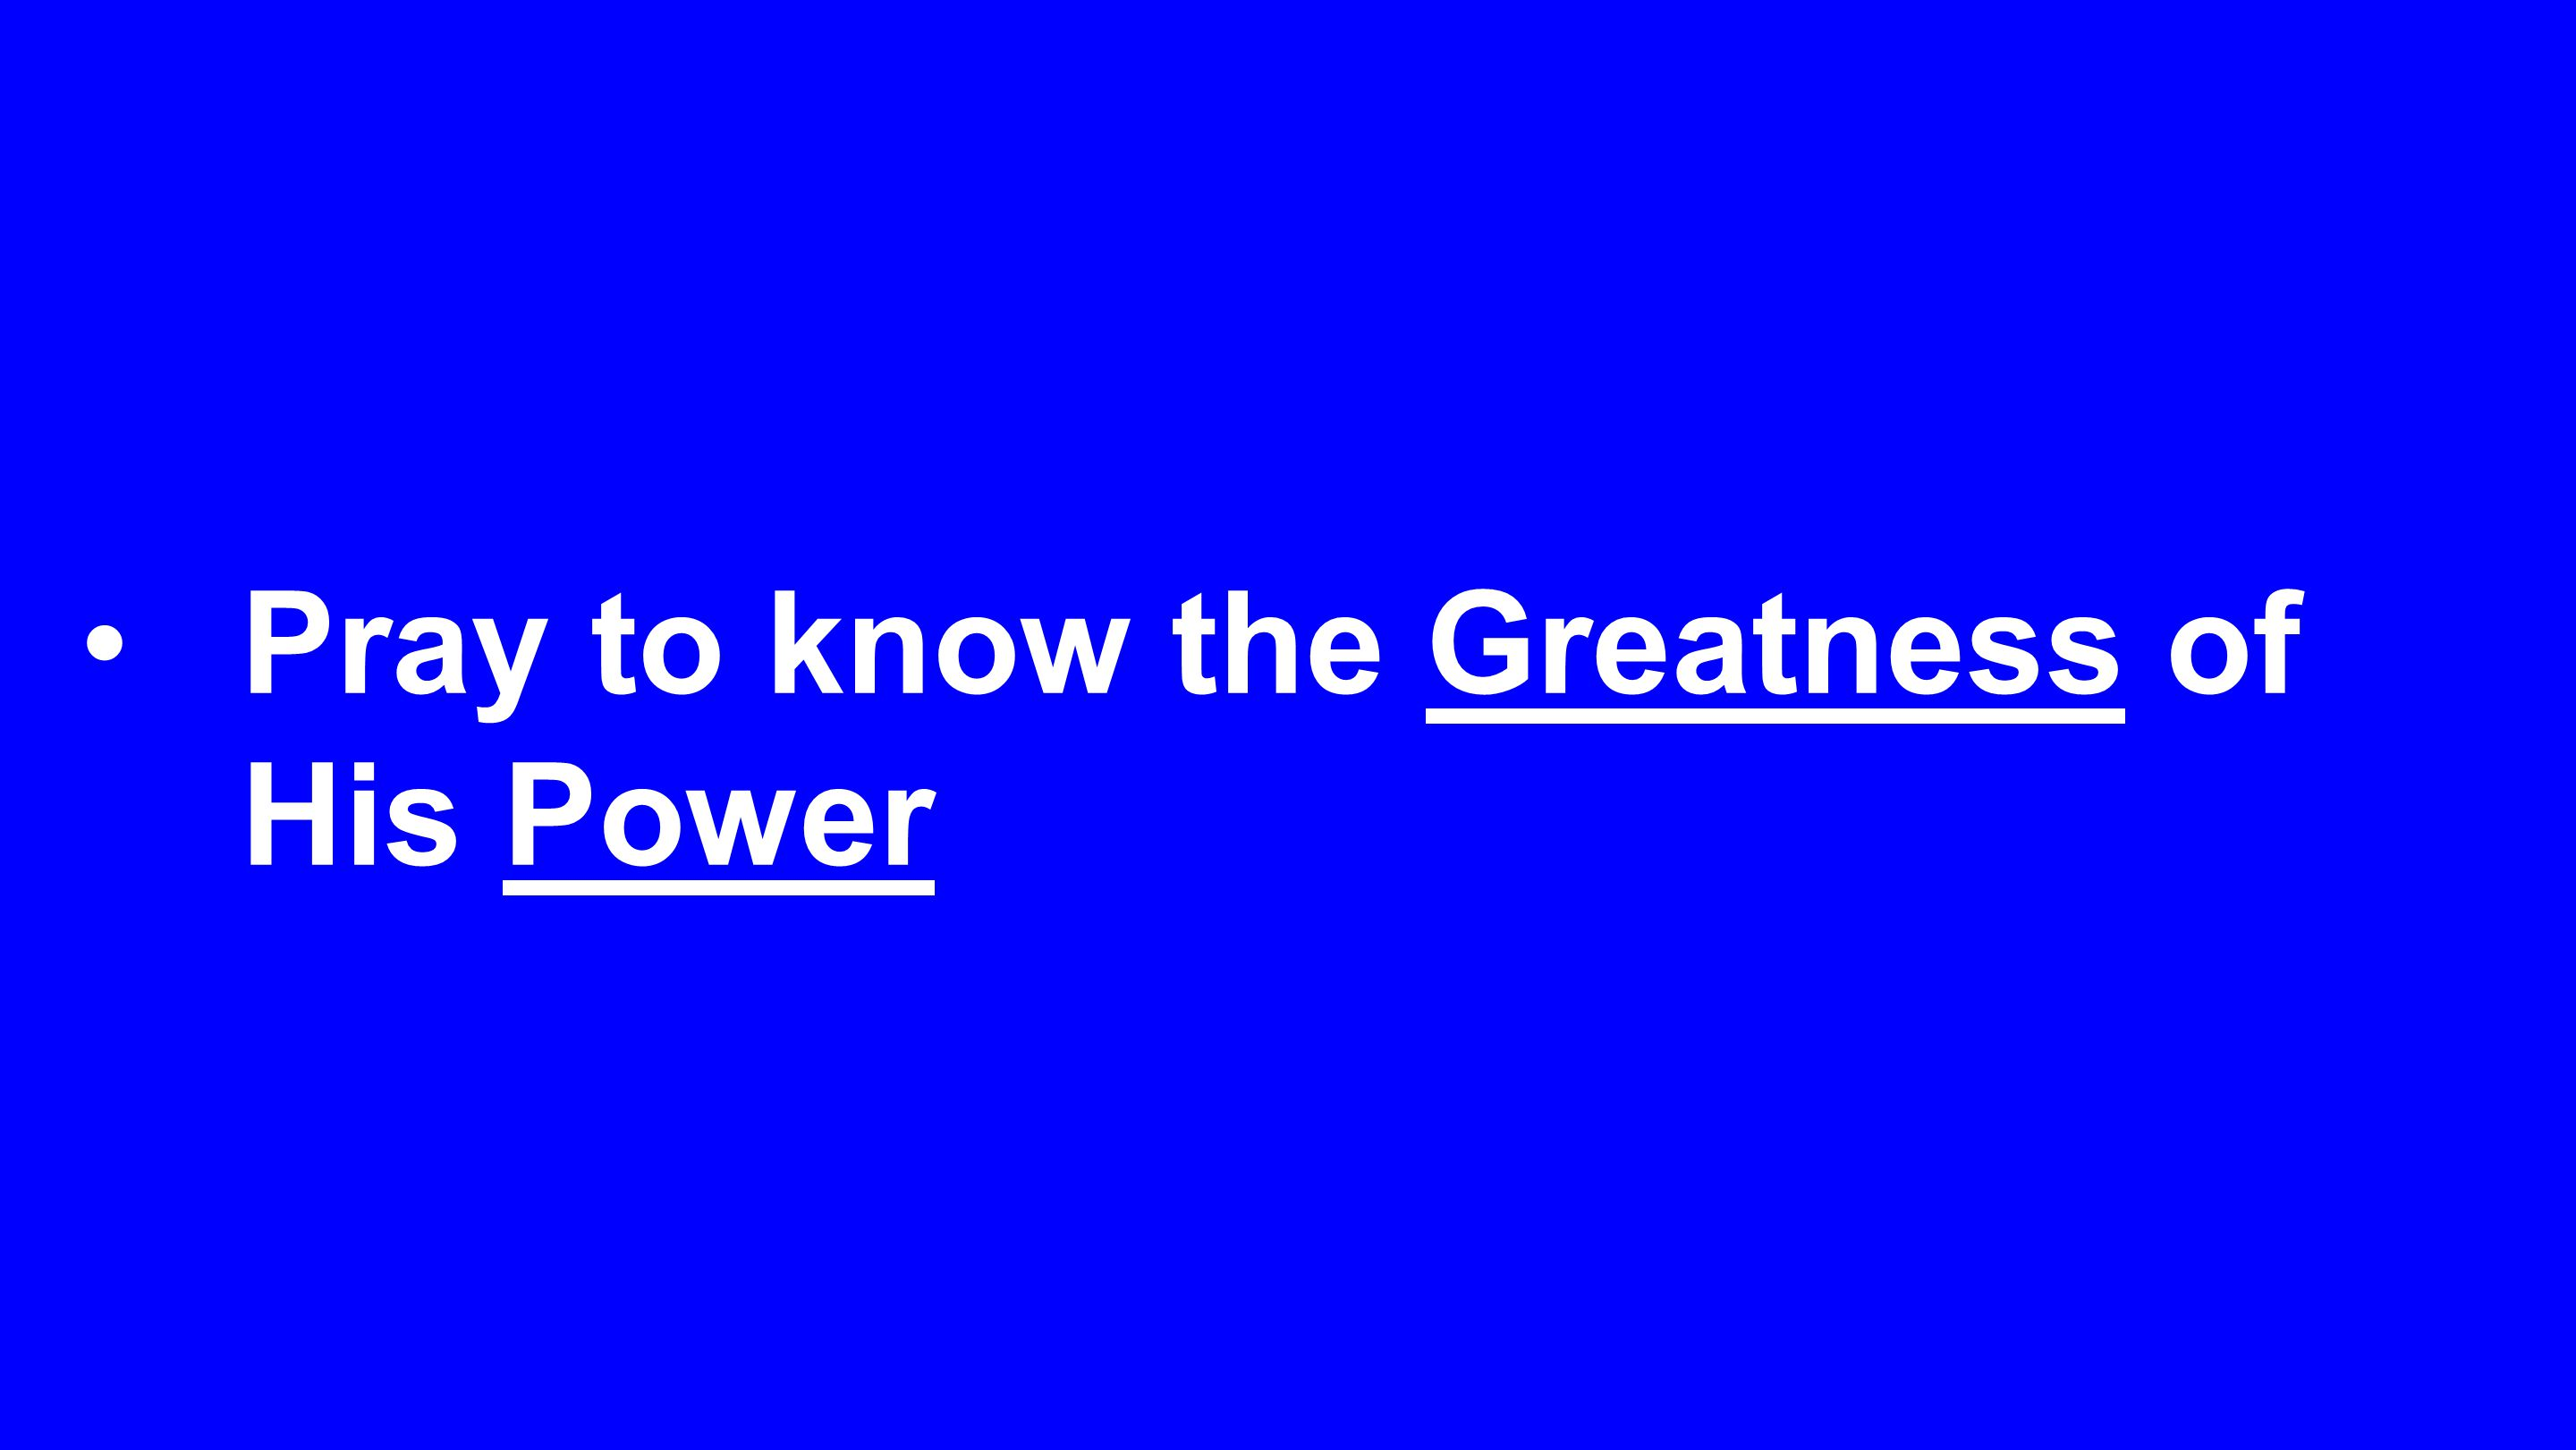 Pray to know the Greatness of His Power